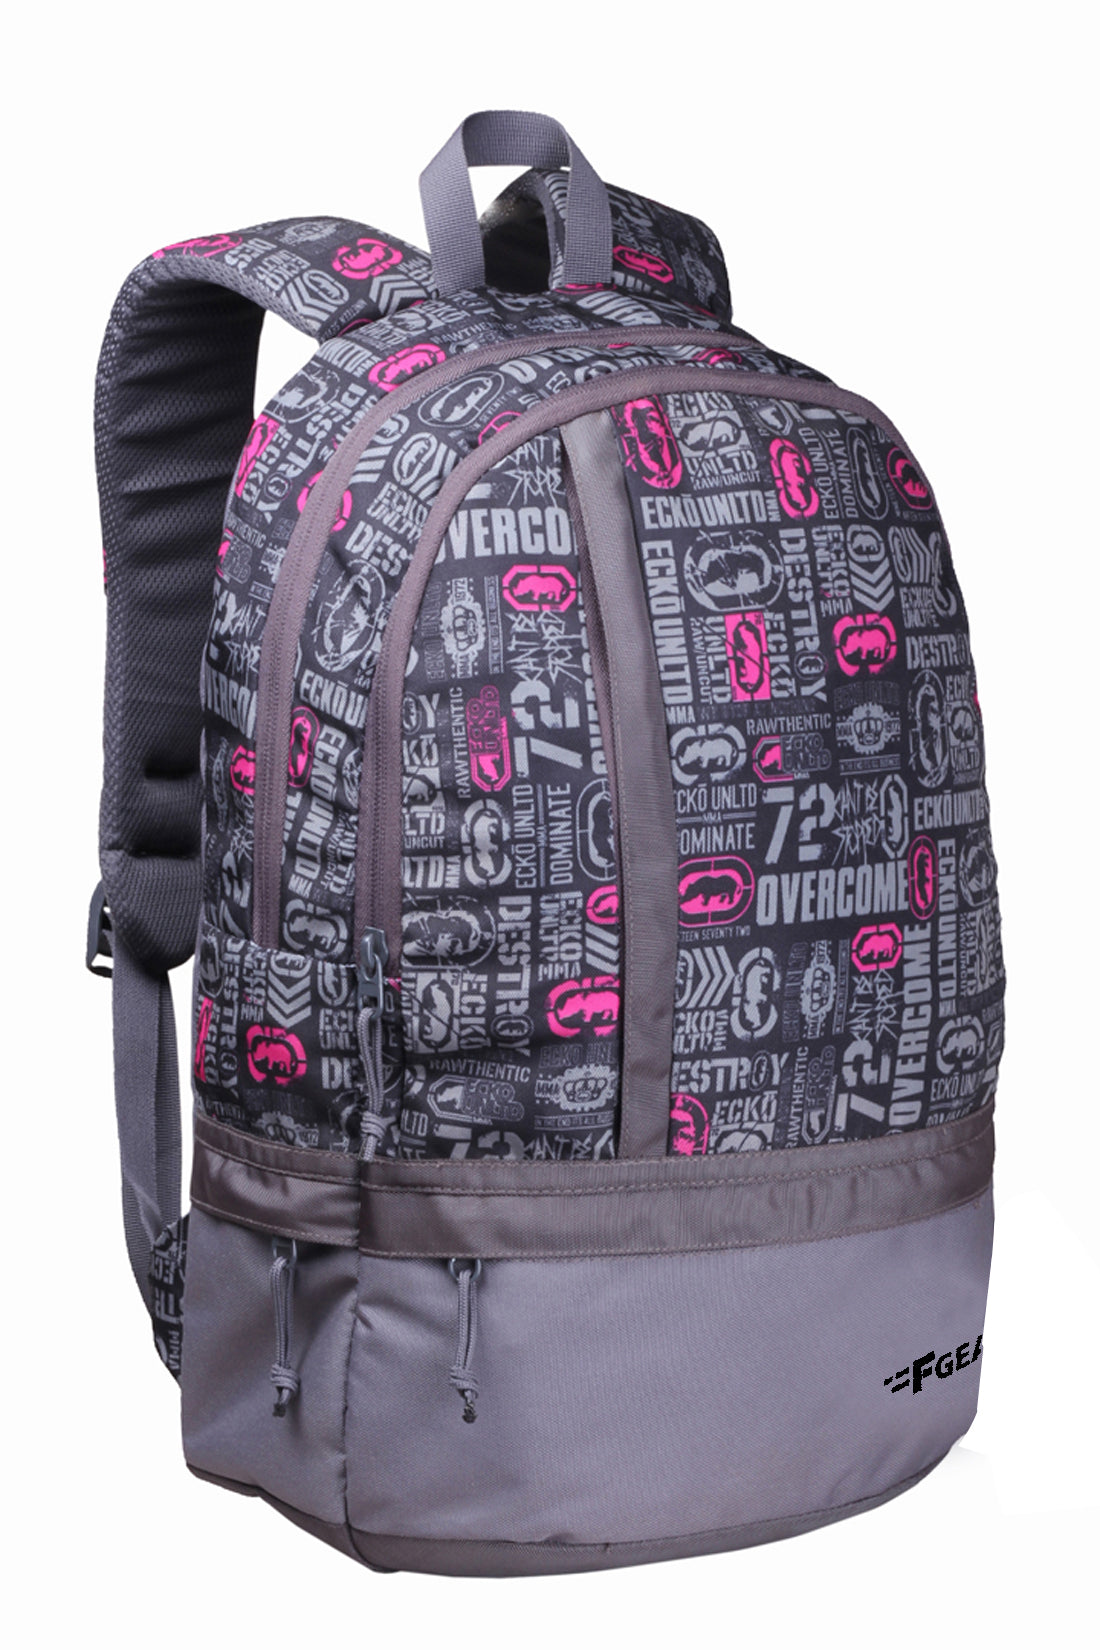 F Gear Burner P6 26 Ltrs Pink Casual Laptop Backpack (2182)